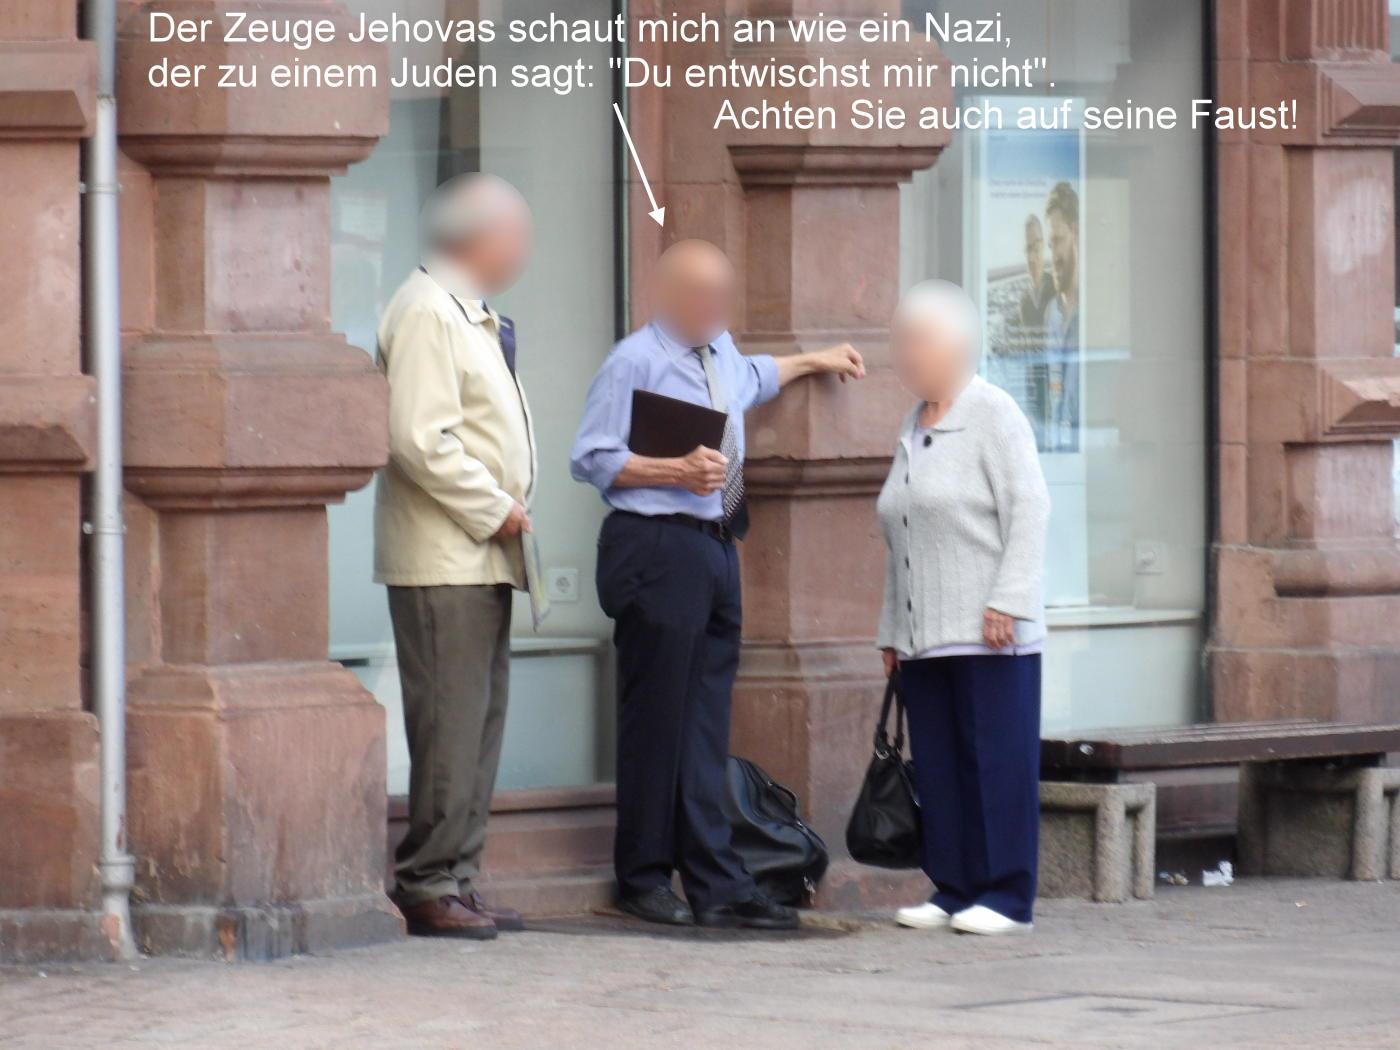 The superiority of Jehovah's Witnesses is perfect